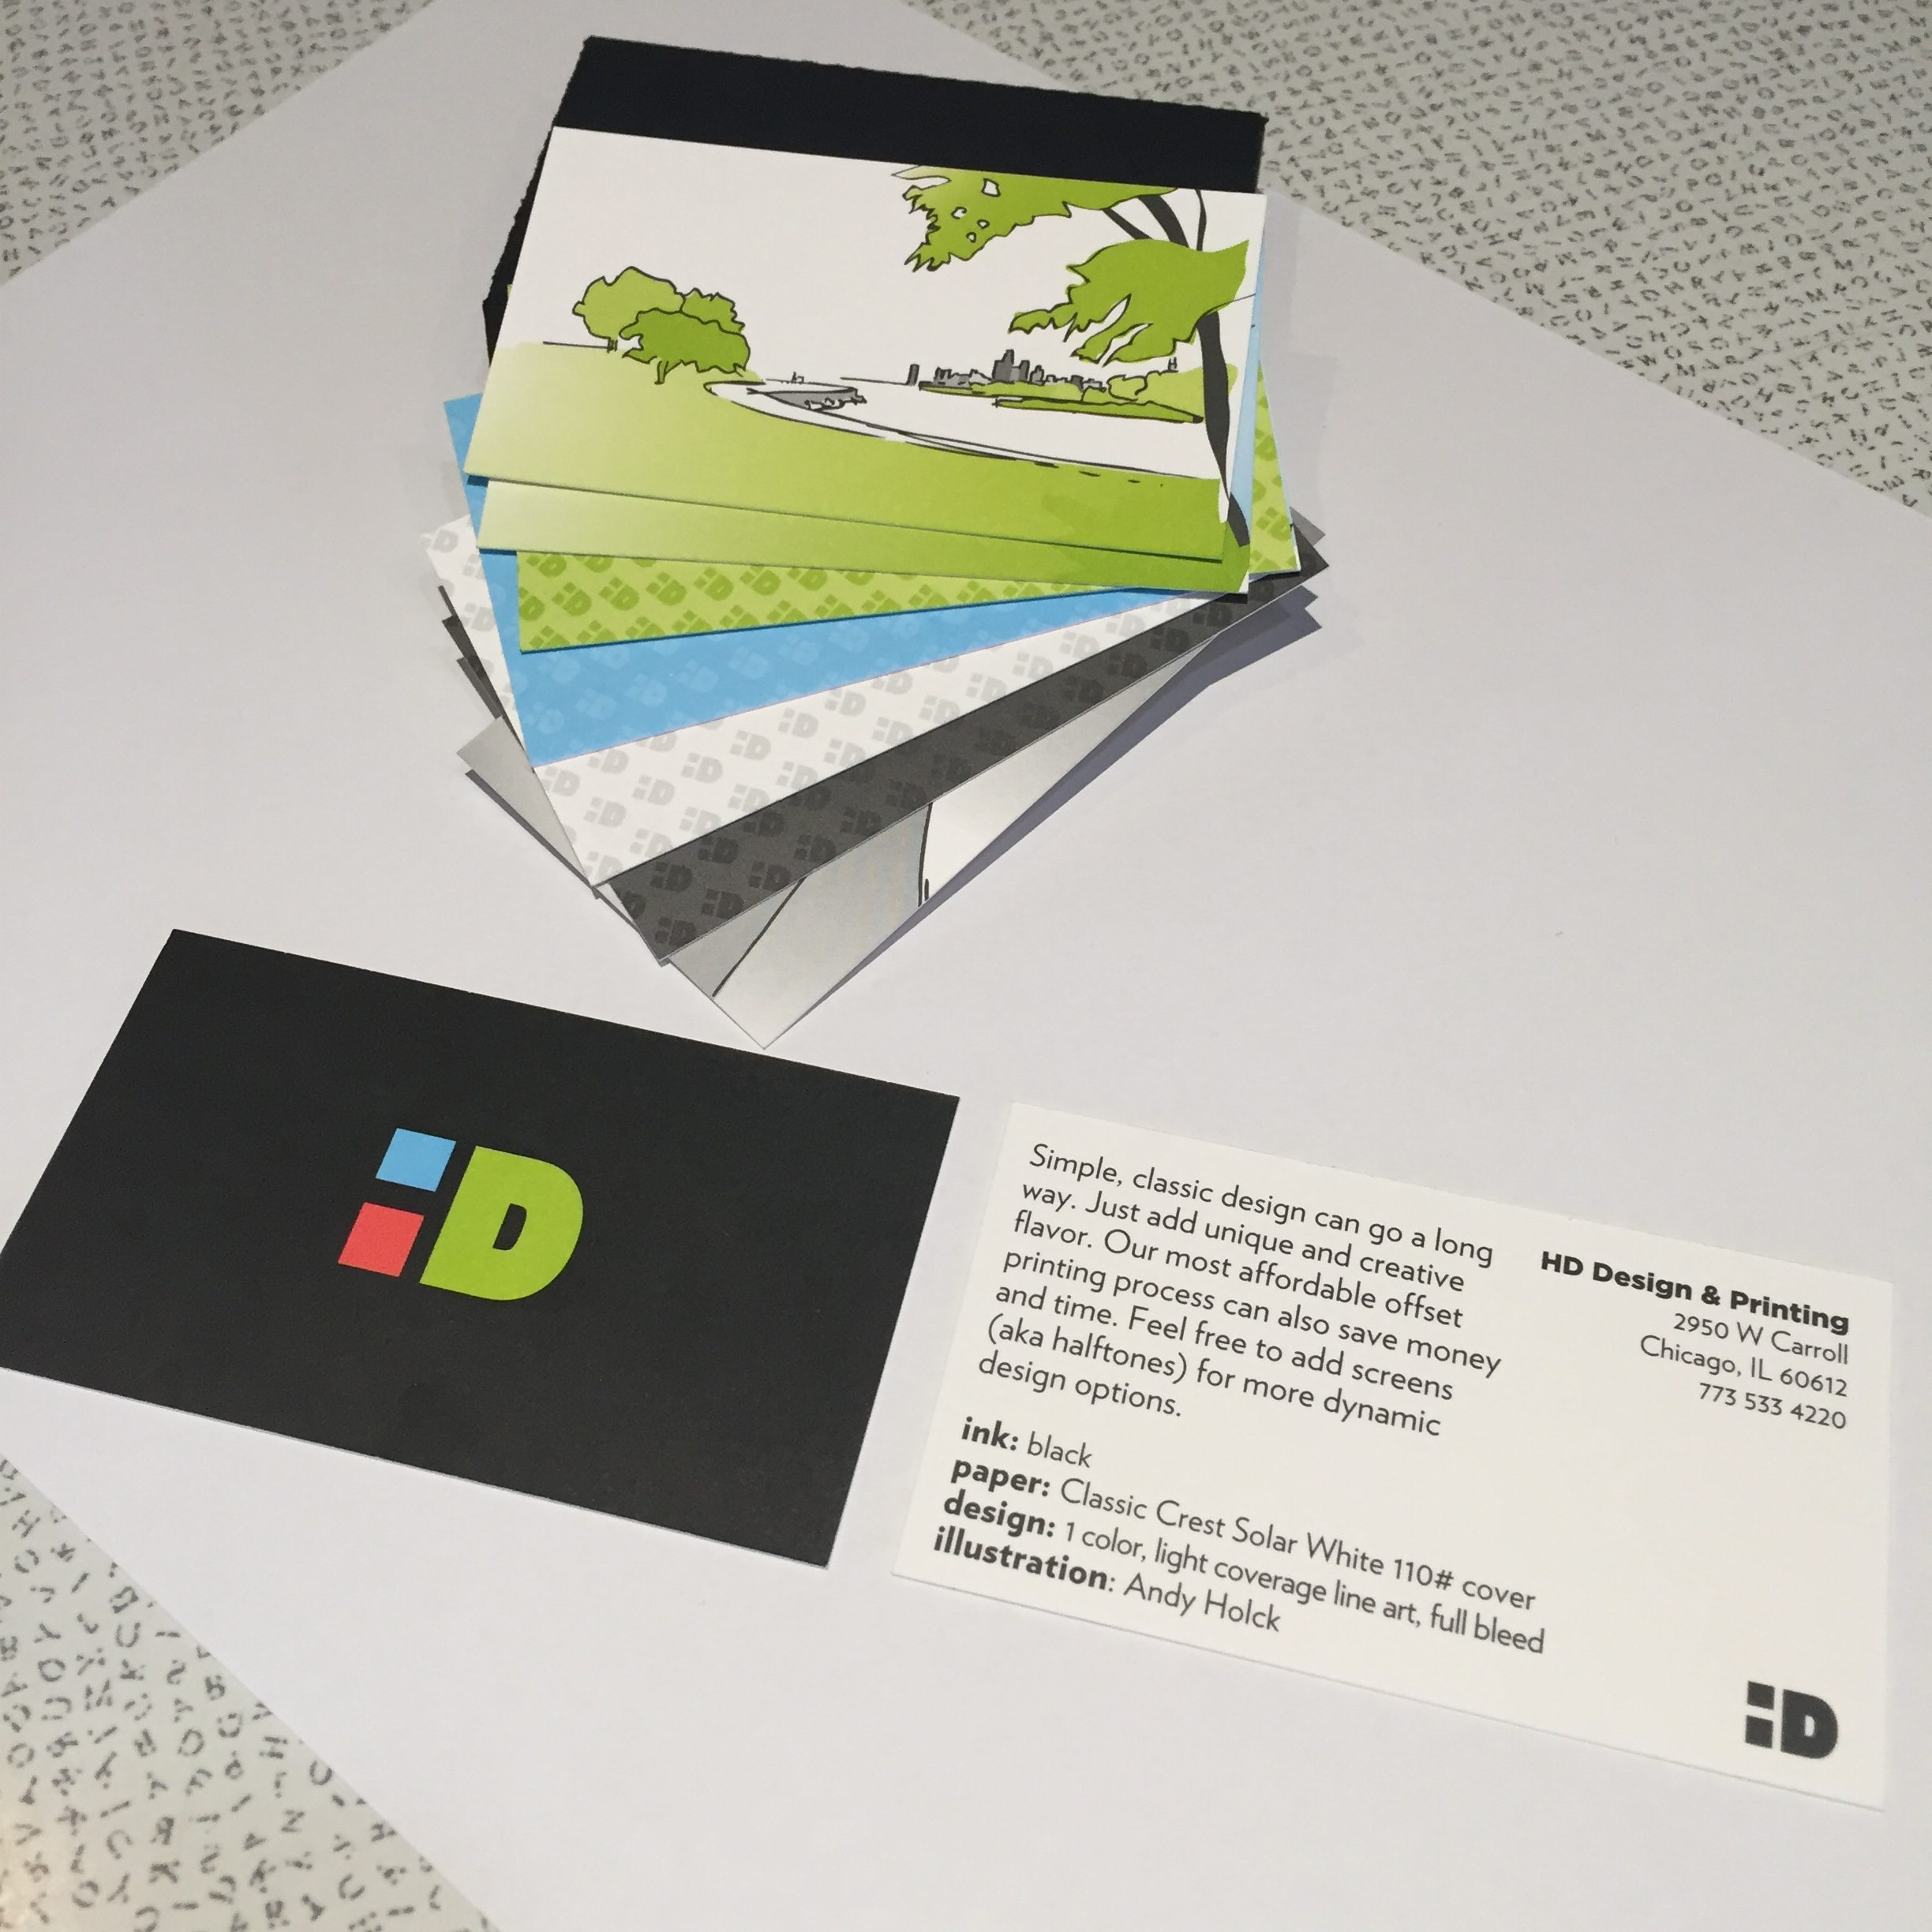 hd design printing llc – business card samples